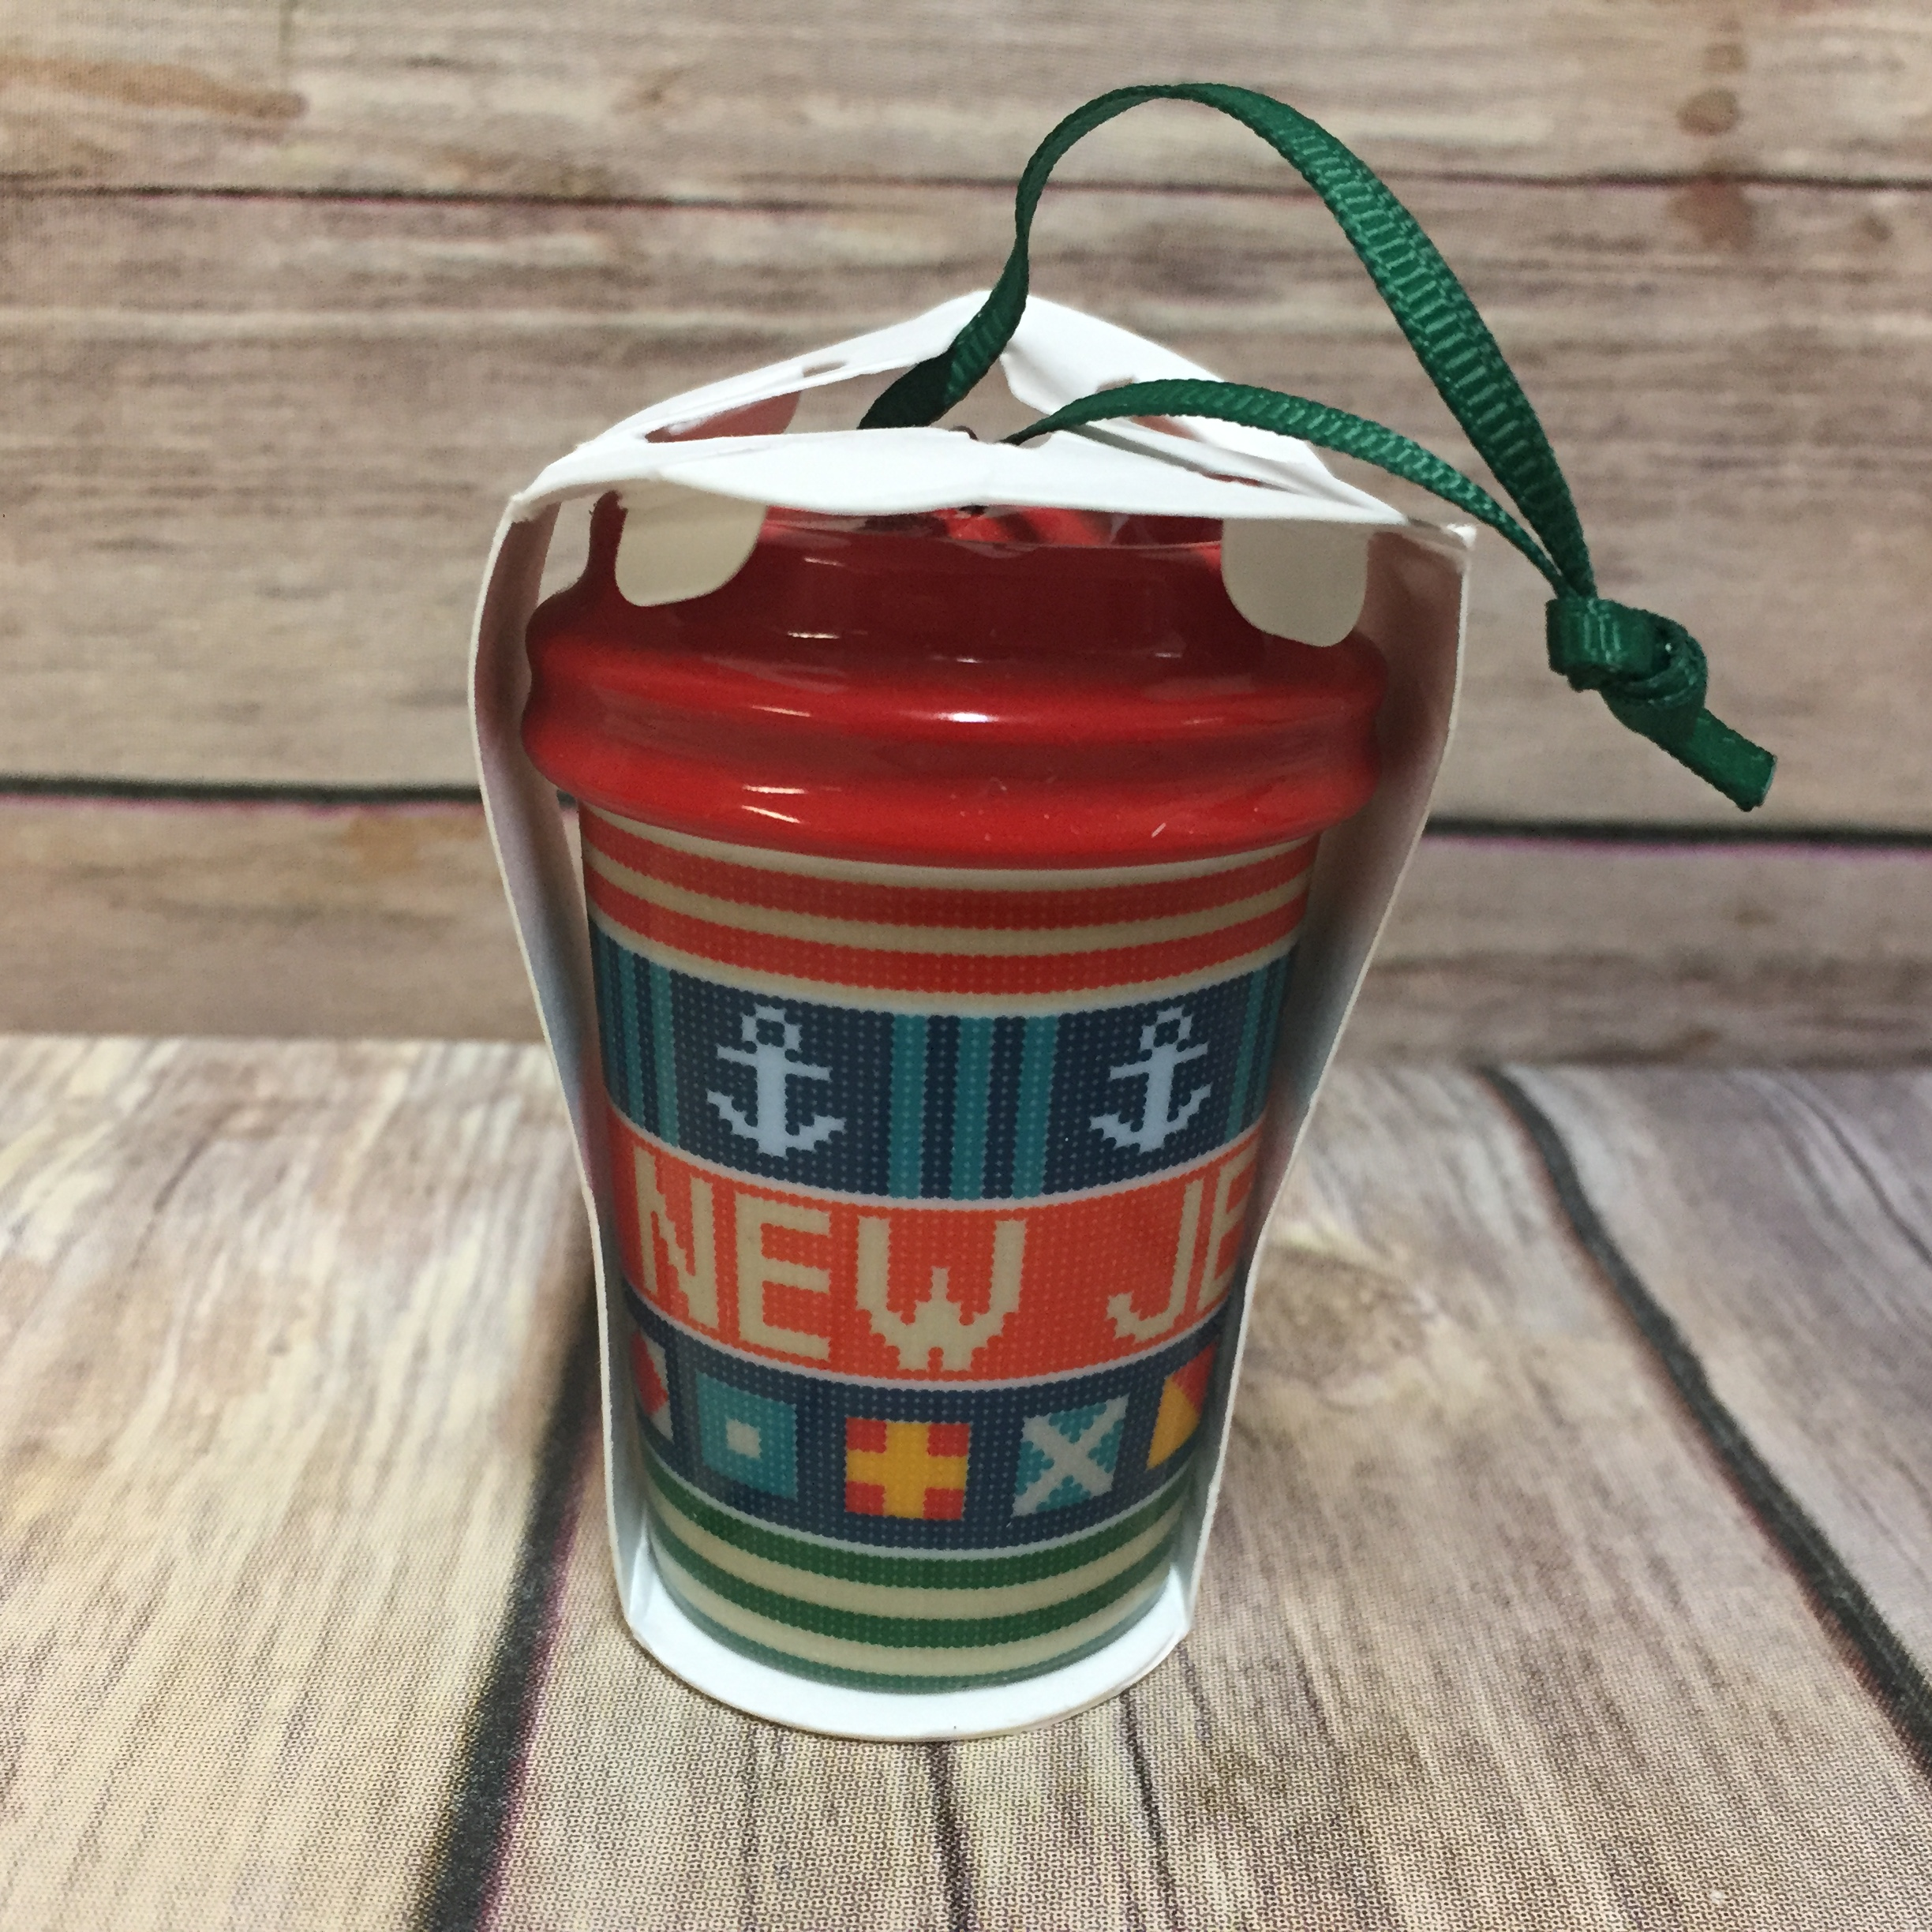 new-jersey-ornament-starbucks-christmas-to-go-cup-state-collection